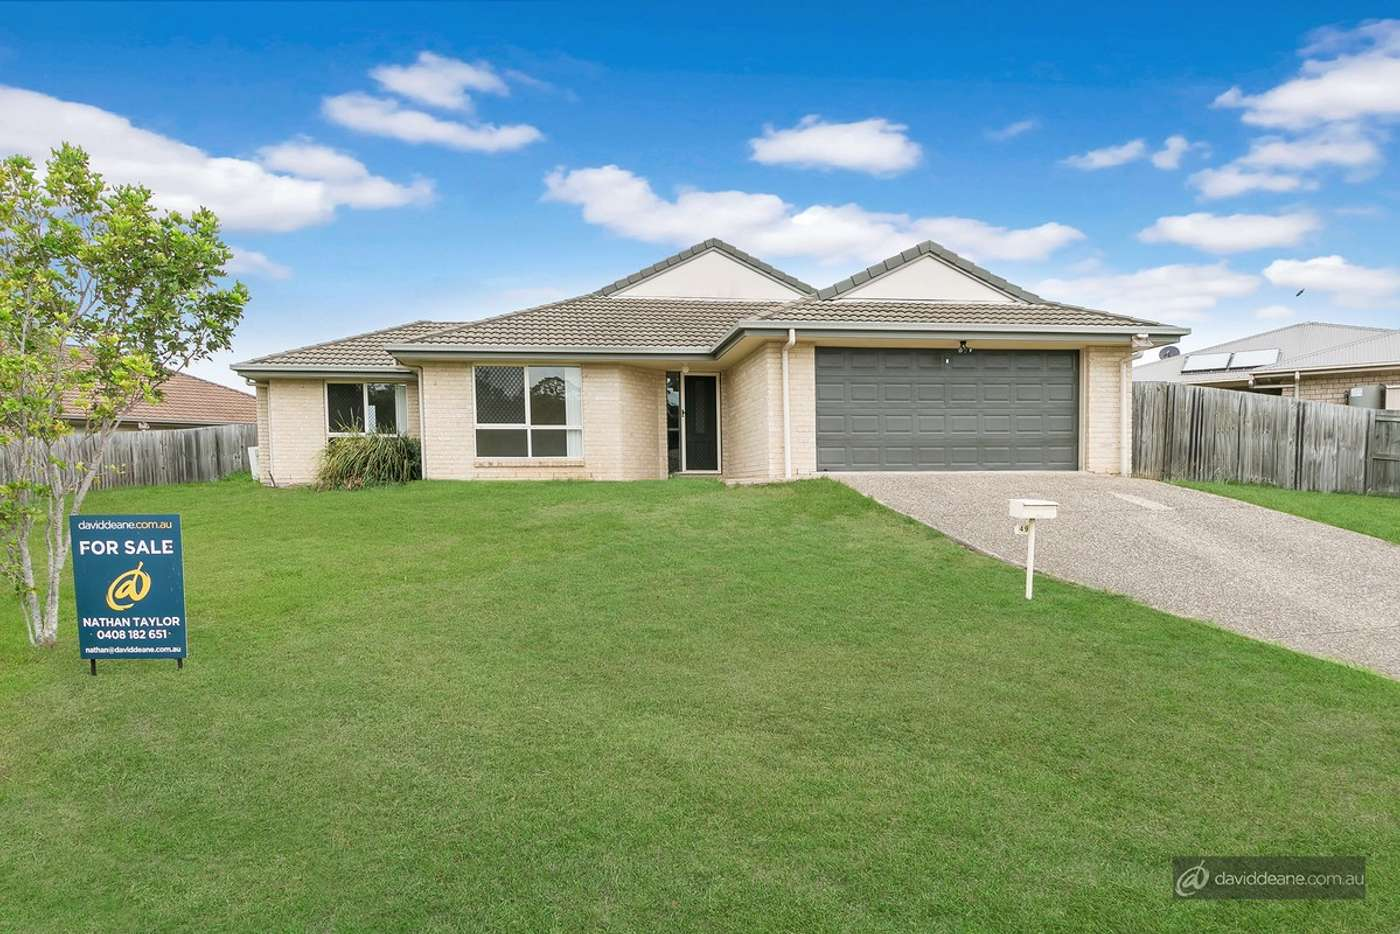 Main view of Homely house listing, 49 Karelyn Drive, Joyner QLD 4500